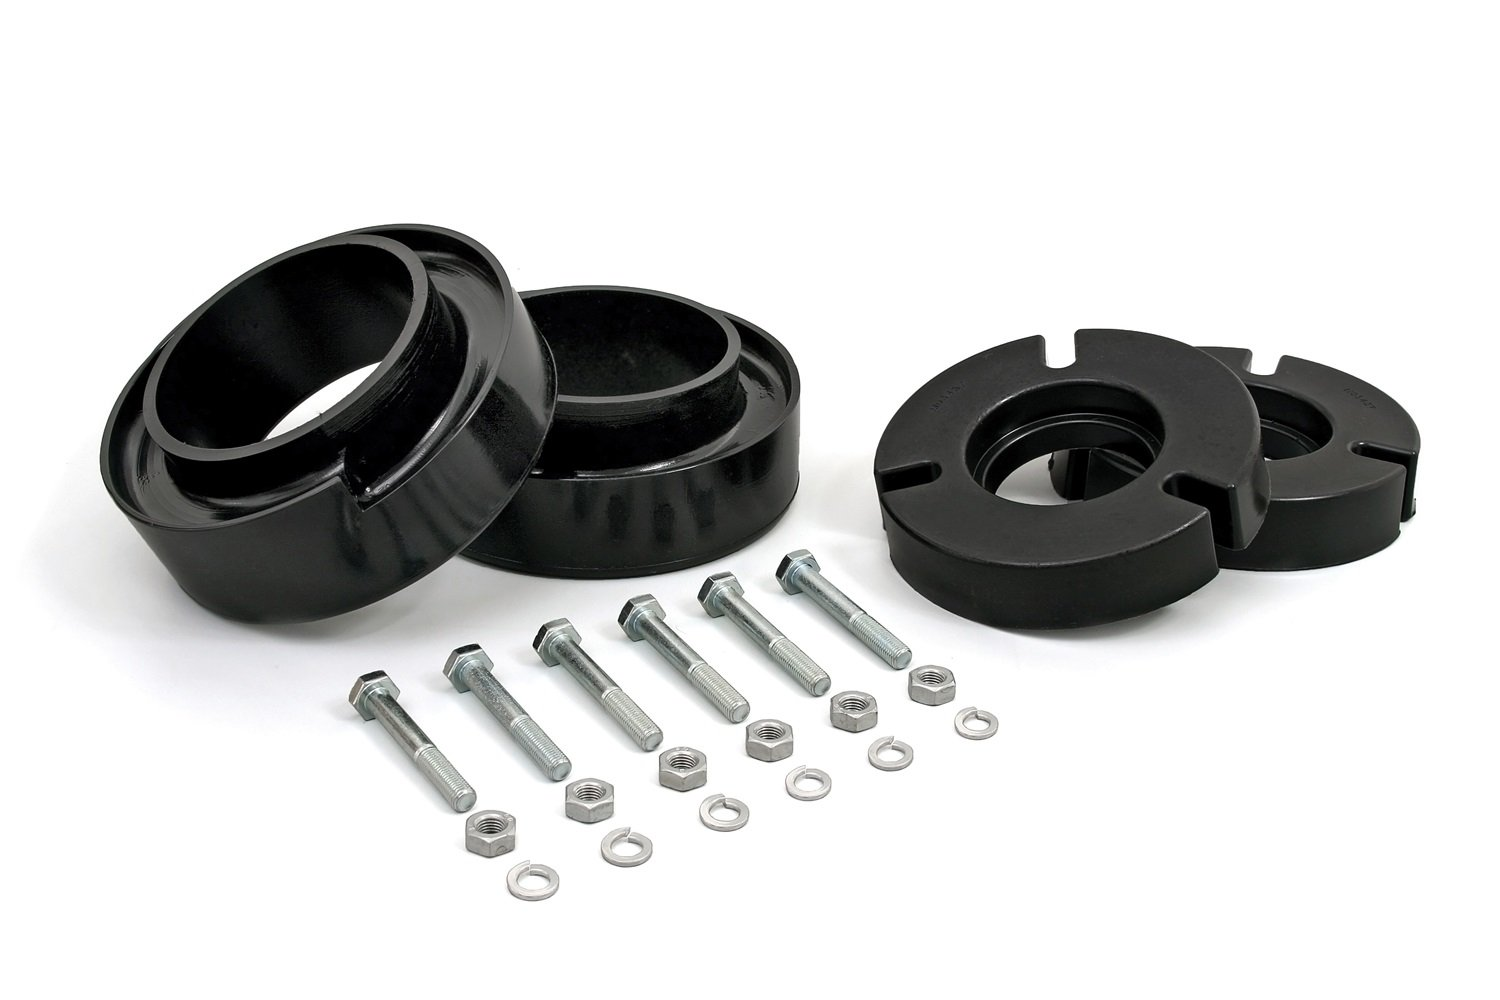 all cabs KF09112BK Daystar fits 2003 to 2009 2//4WD Ford Expedition 2 Rear Lift Kit all transmissions Made in America